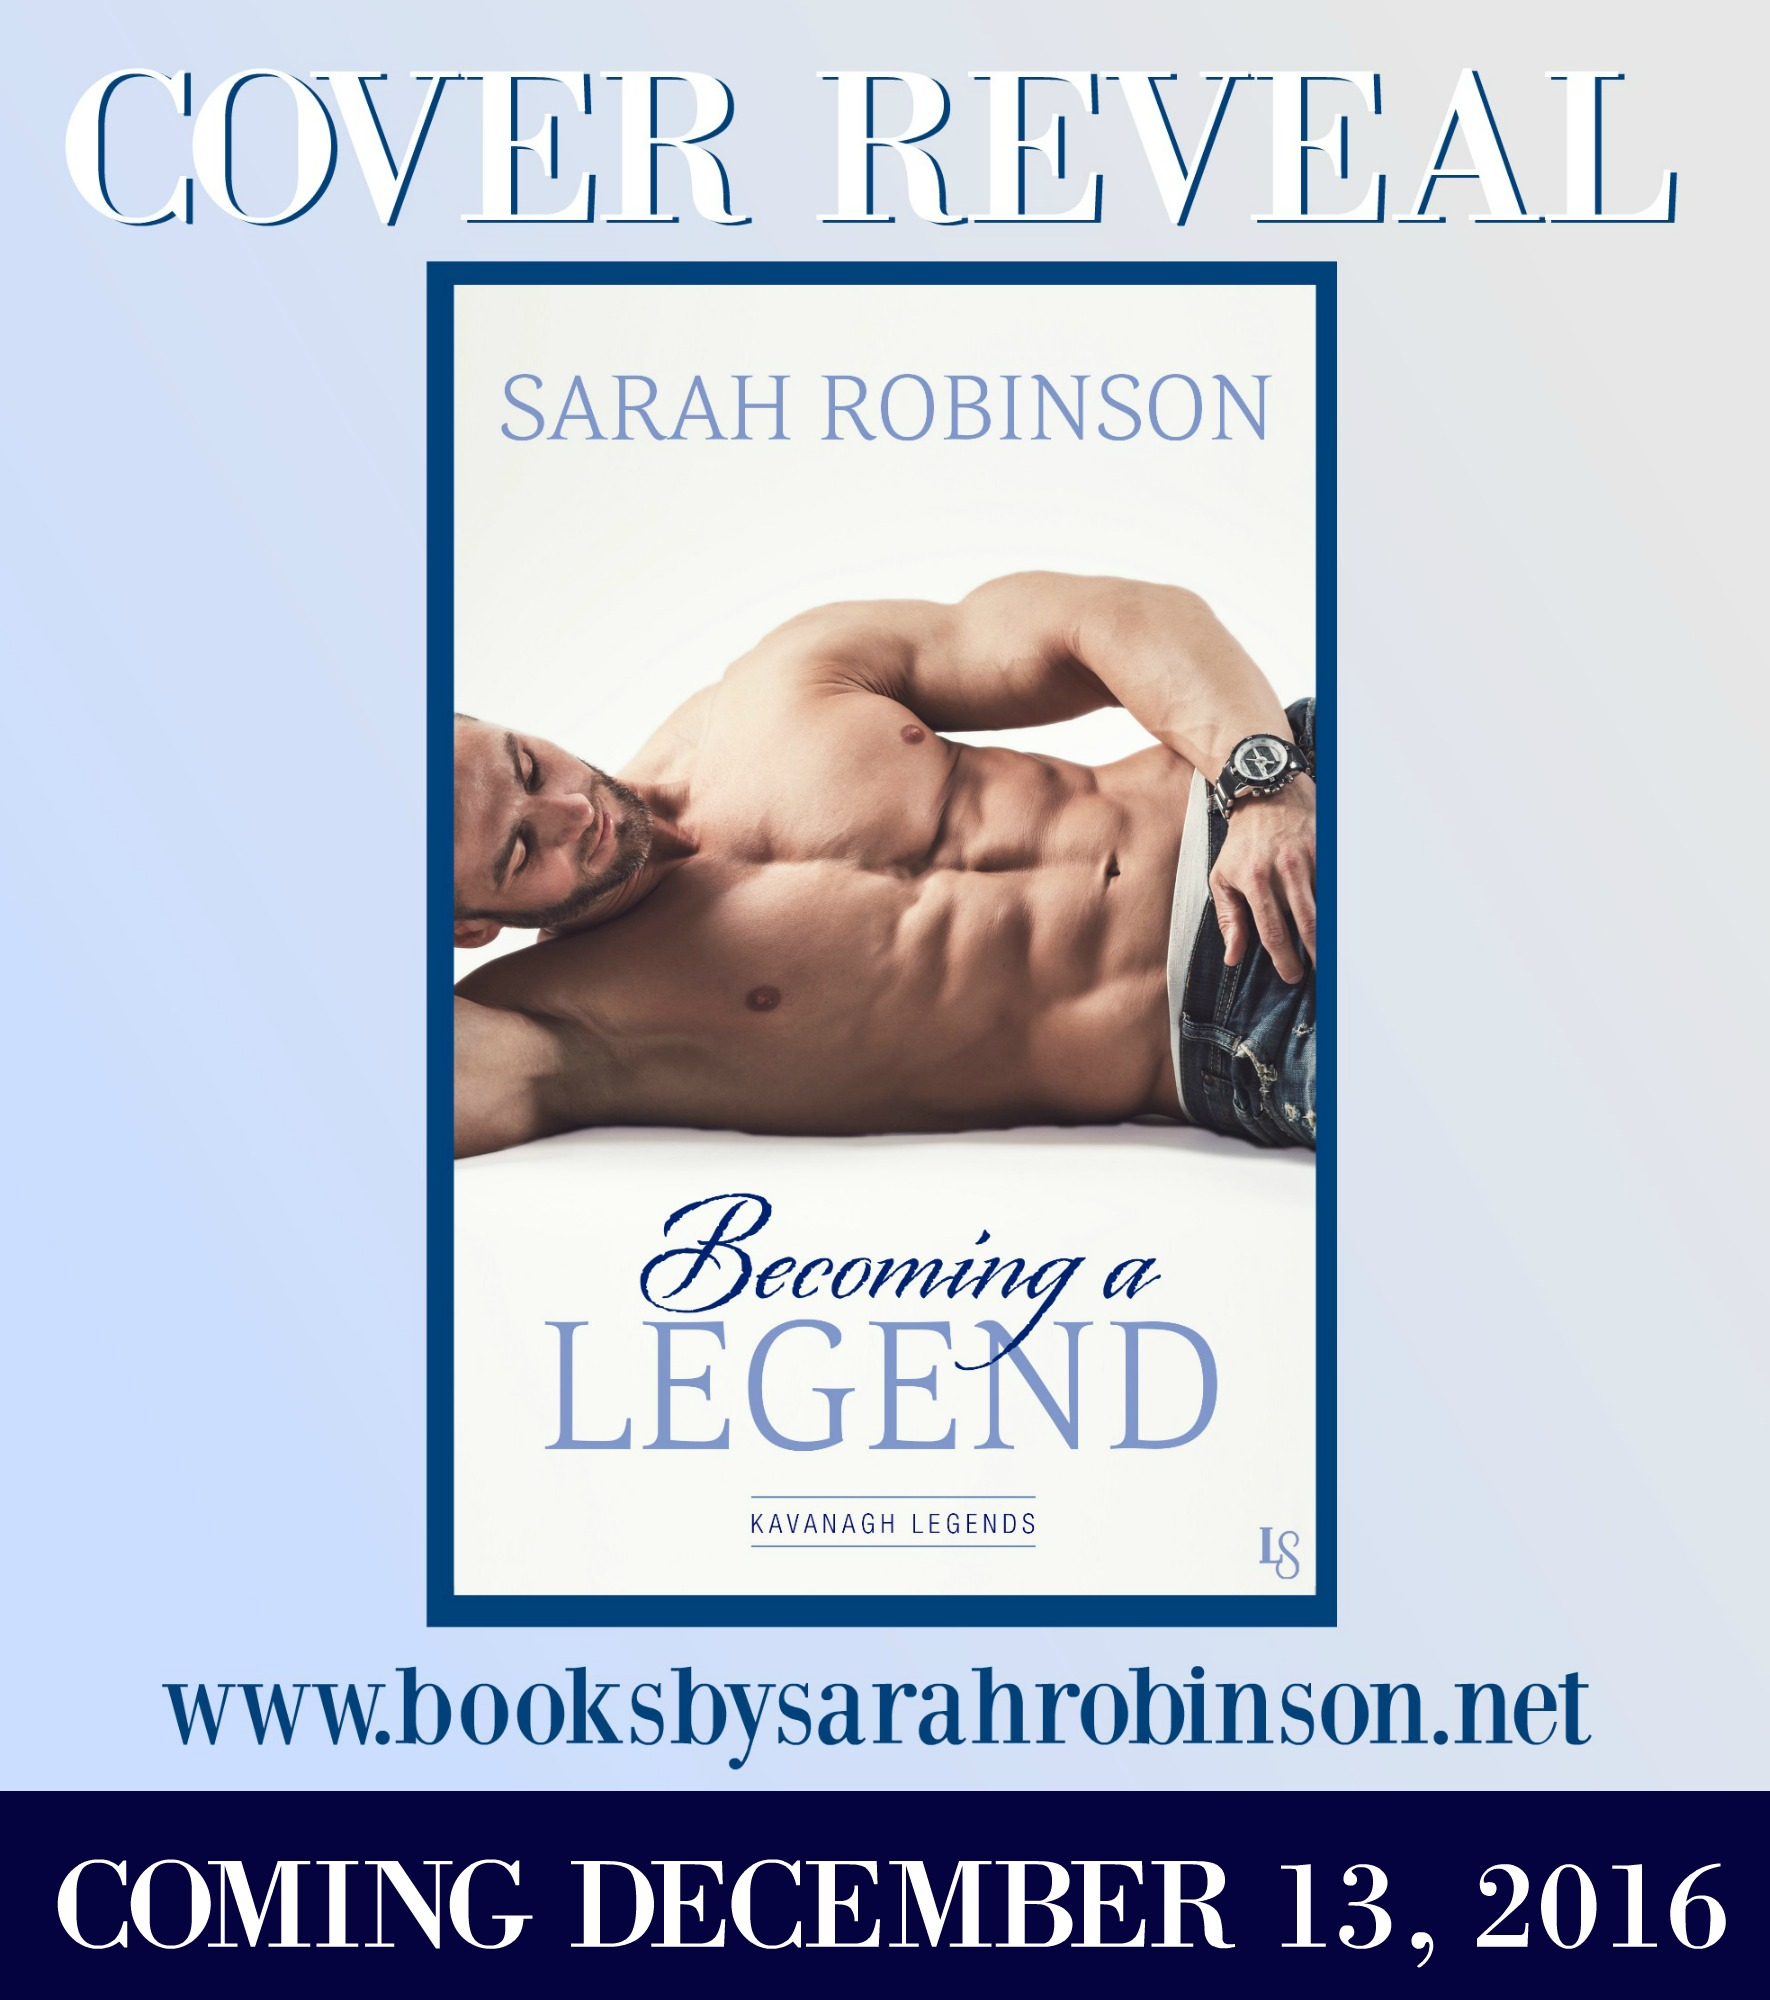 Cover Reveal Book 3 w Date